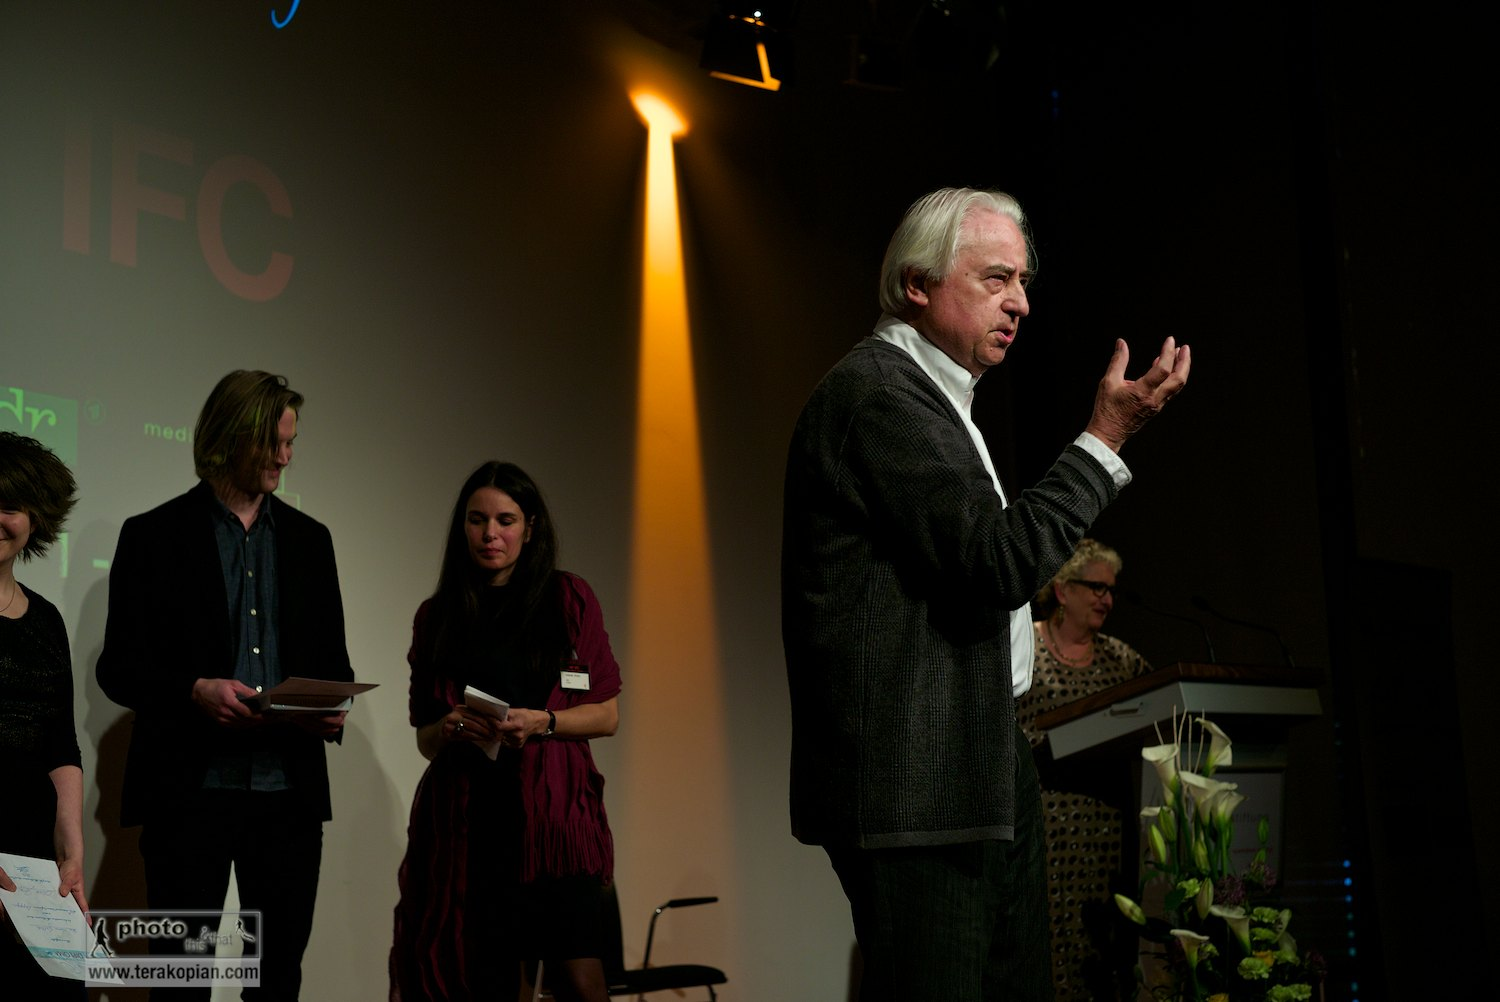 Official opening of the IFC (International Features Conference) by Peter Leonard Braun, also called Leo (German feature-maker), Media Campus (Medienstifftung der Sparkasse Leipzig), Poetenweg, Leipzig, Germany. May 11, 2014. Photo: Edmond Terakopian